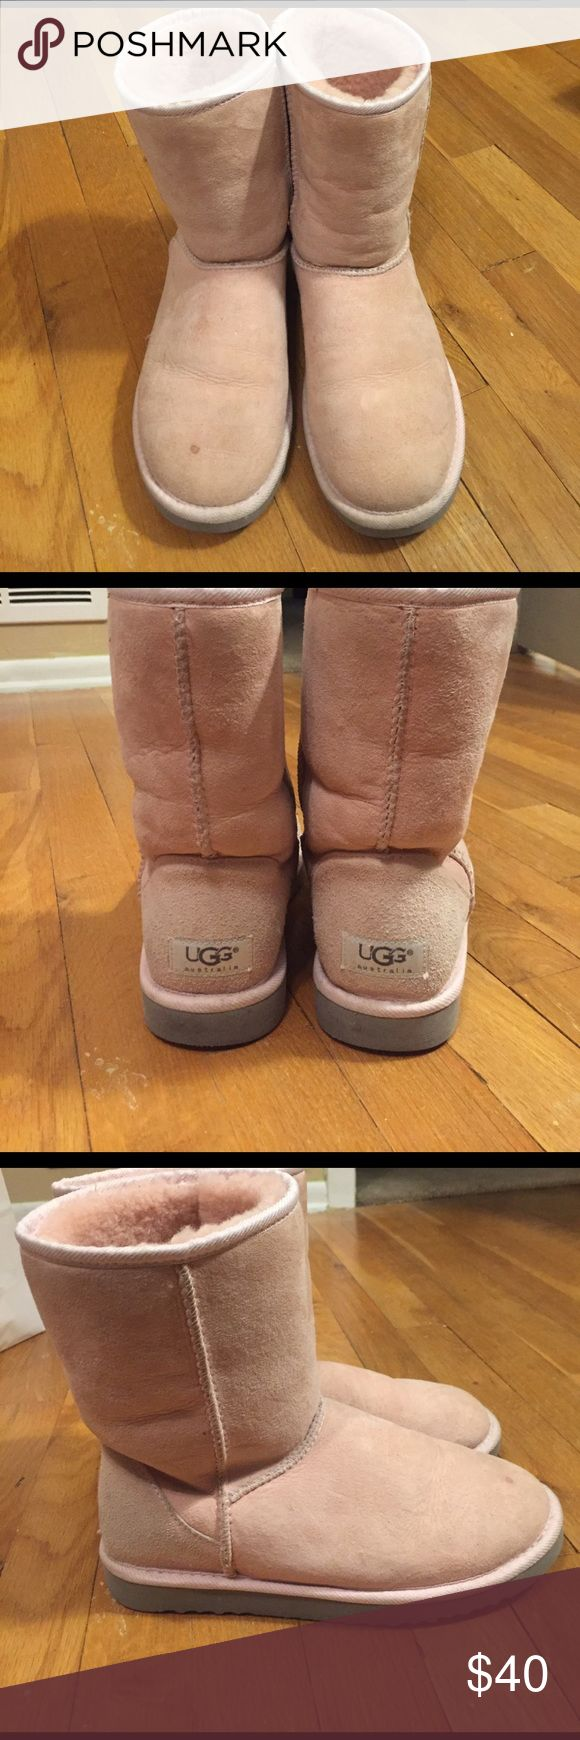 Selling this Baby Pink Classic Short UGGs on Poshmark! My username is: jenglickman. #shopmycloset #poshmark #fashion #shopping #style #forsale #UGG #Shoes